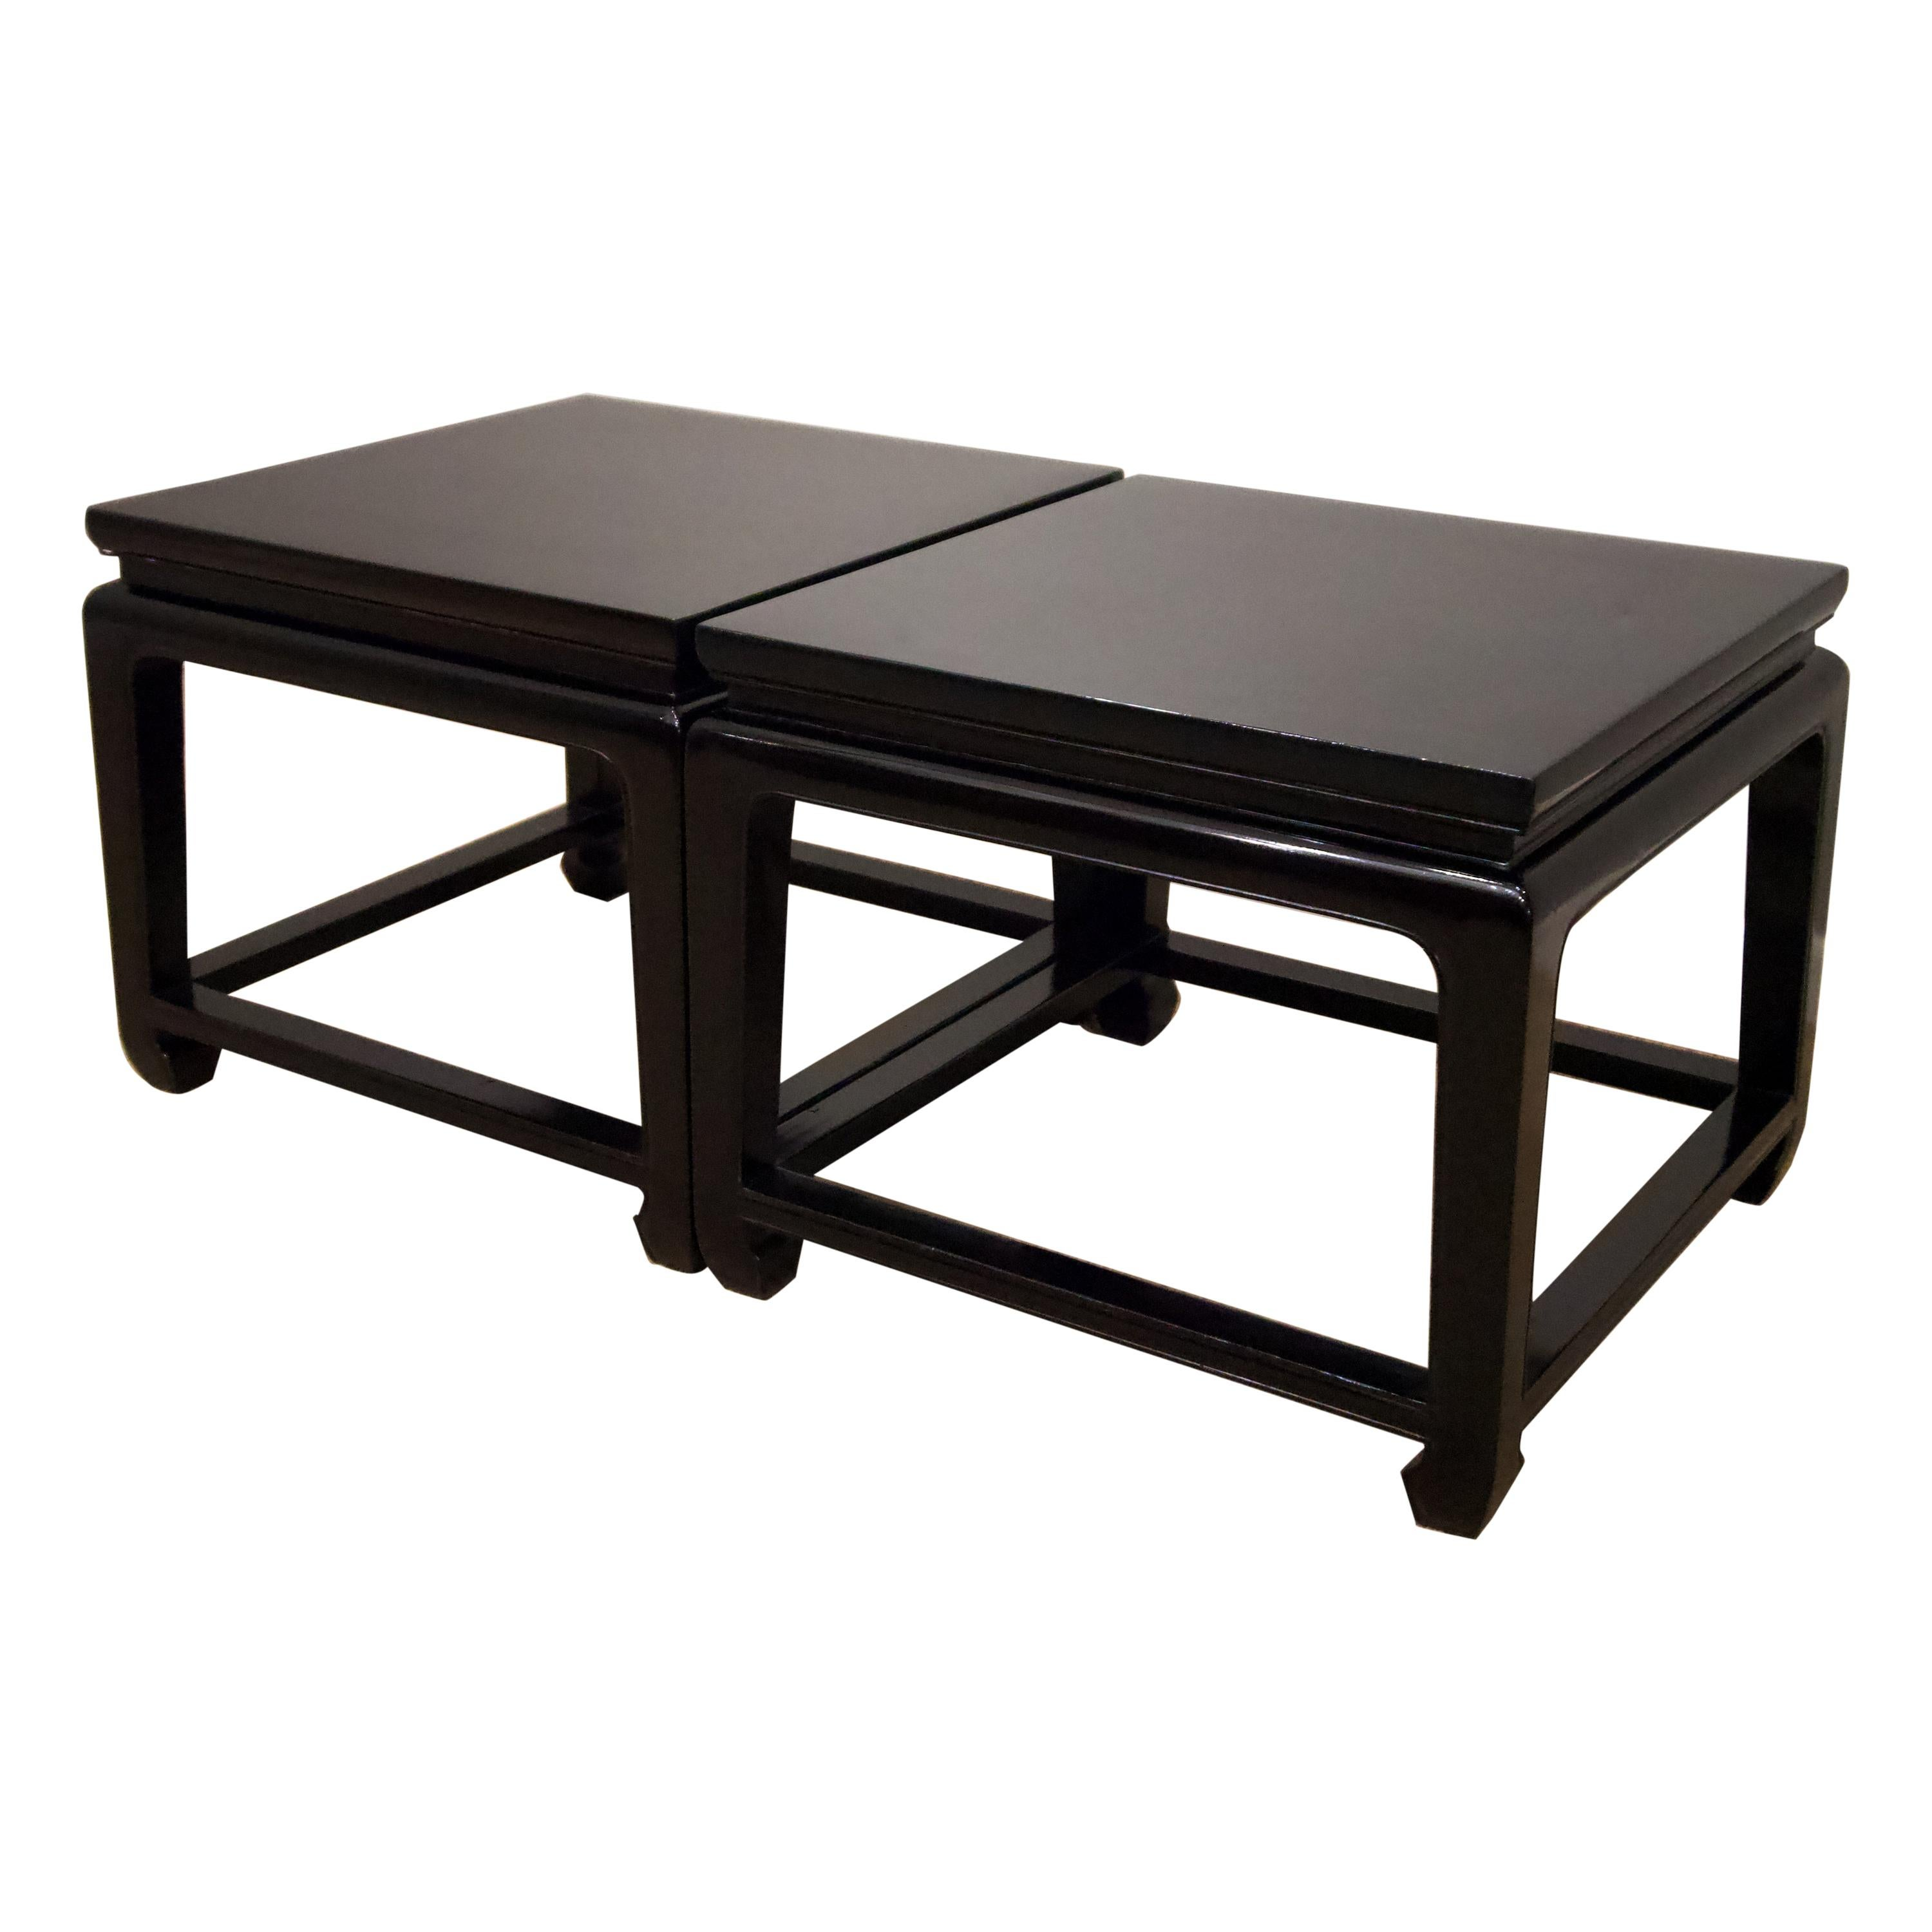 20th Century Pair of Chinese Style Ebonized Side Tables / CoffeeTables